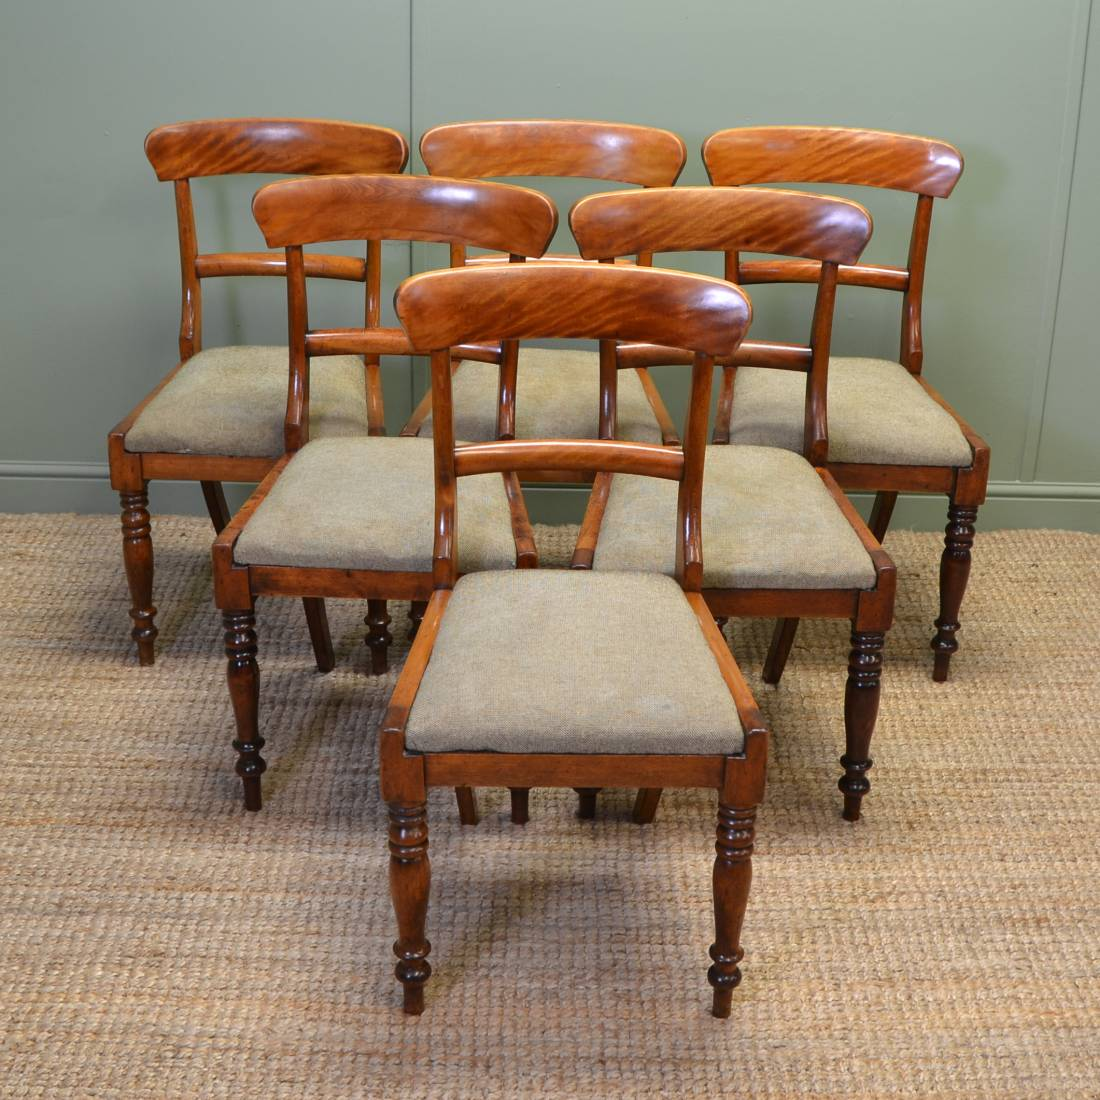 Antique victorian dining chairs - Unusual Set Of Six Country Satin Birch Victorian Dining Chairs